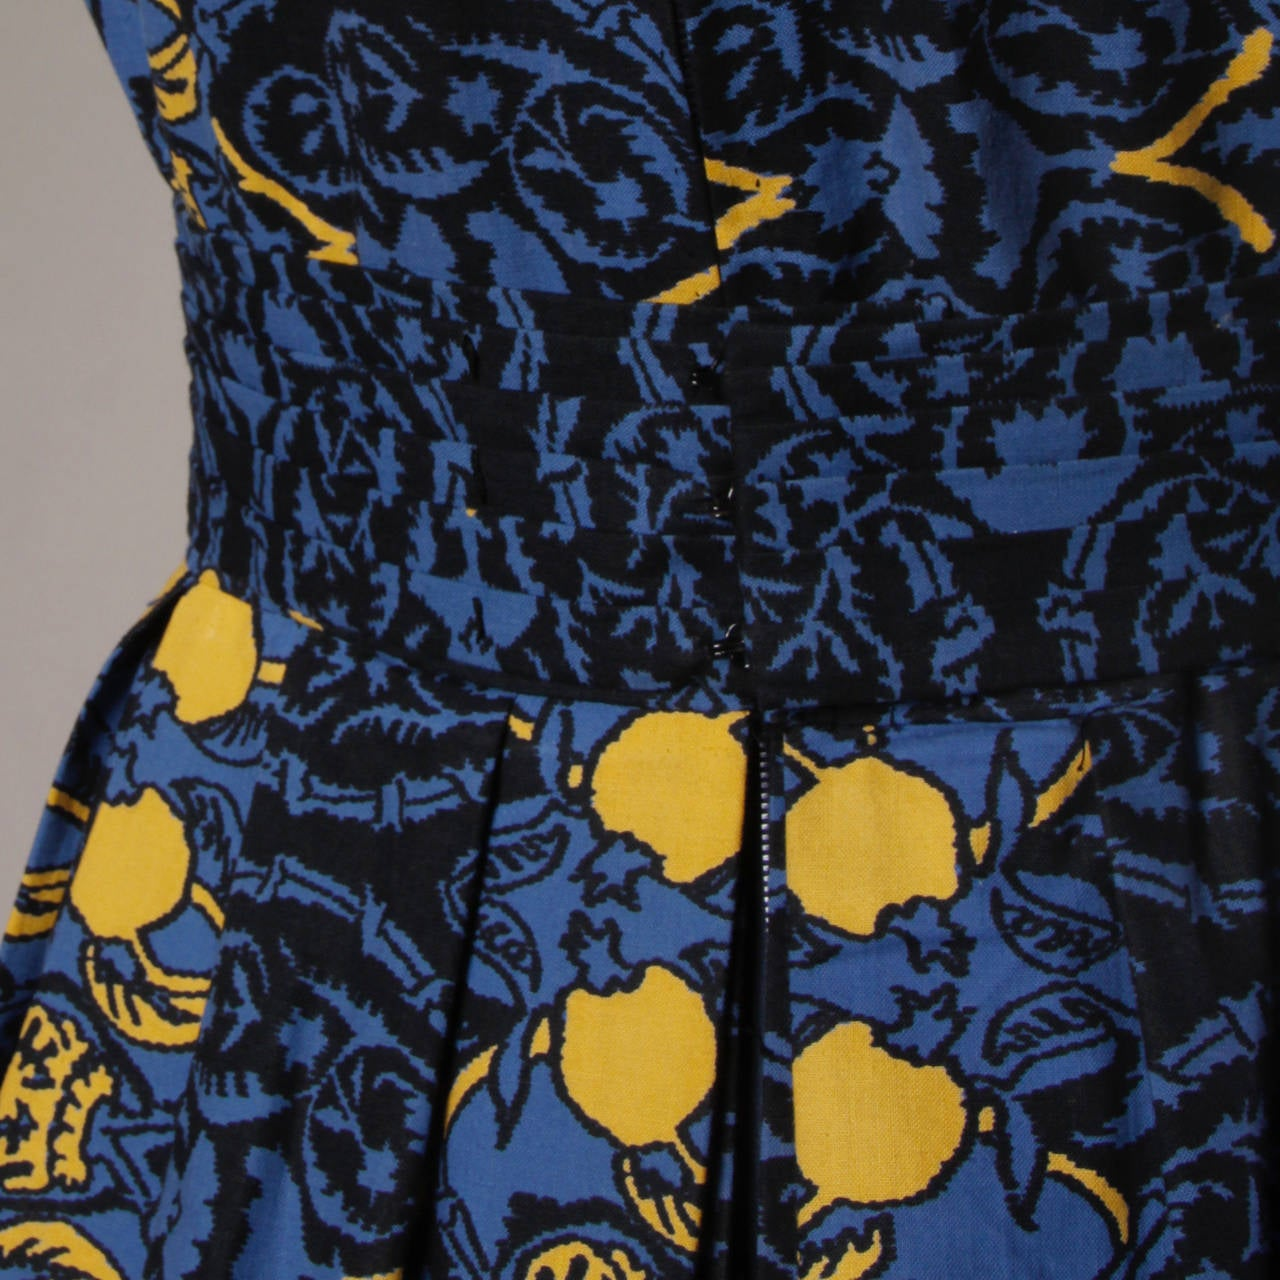 1950s Vintage French Custom Provincial Printed Cotton Dress 7